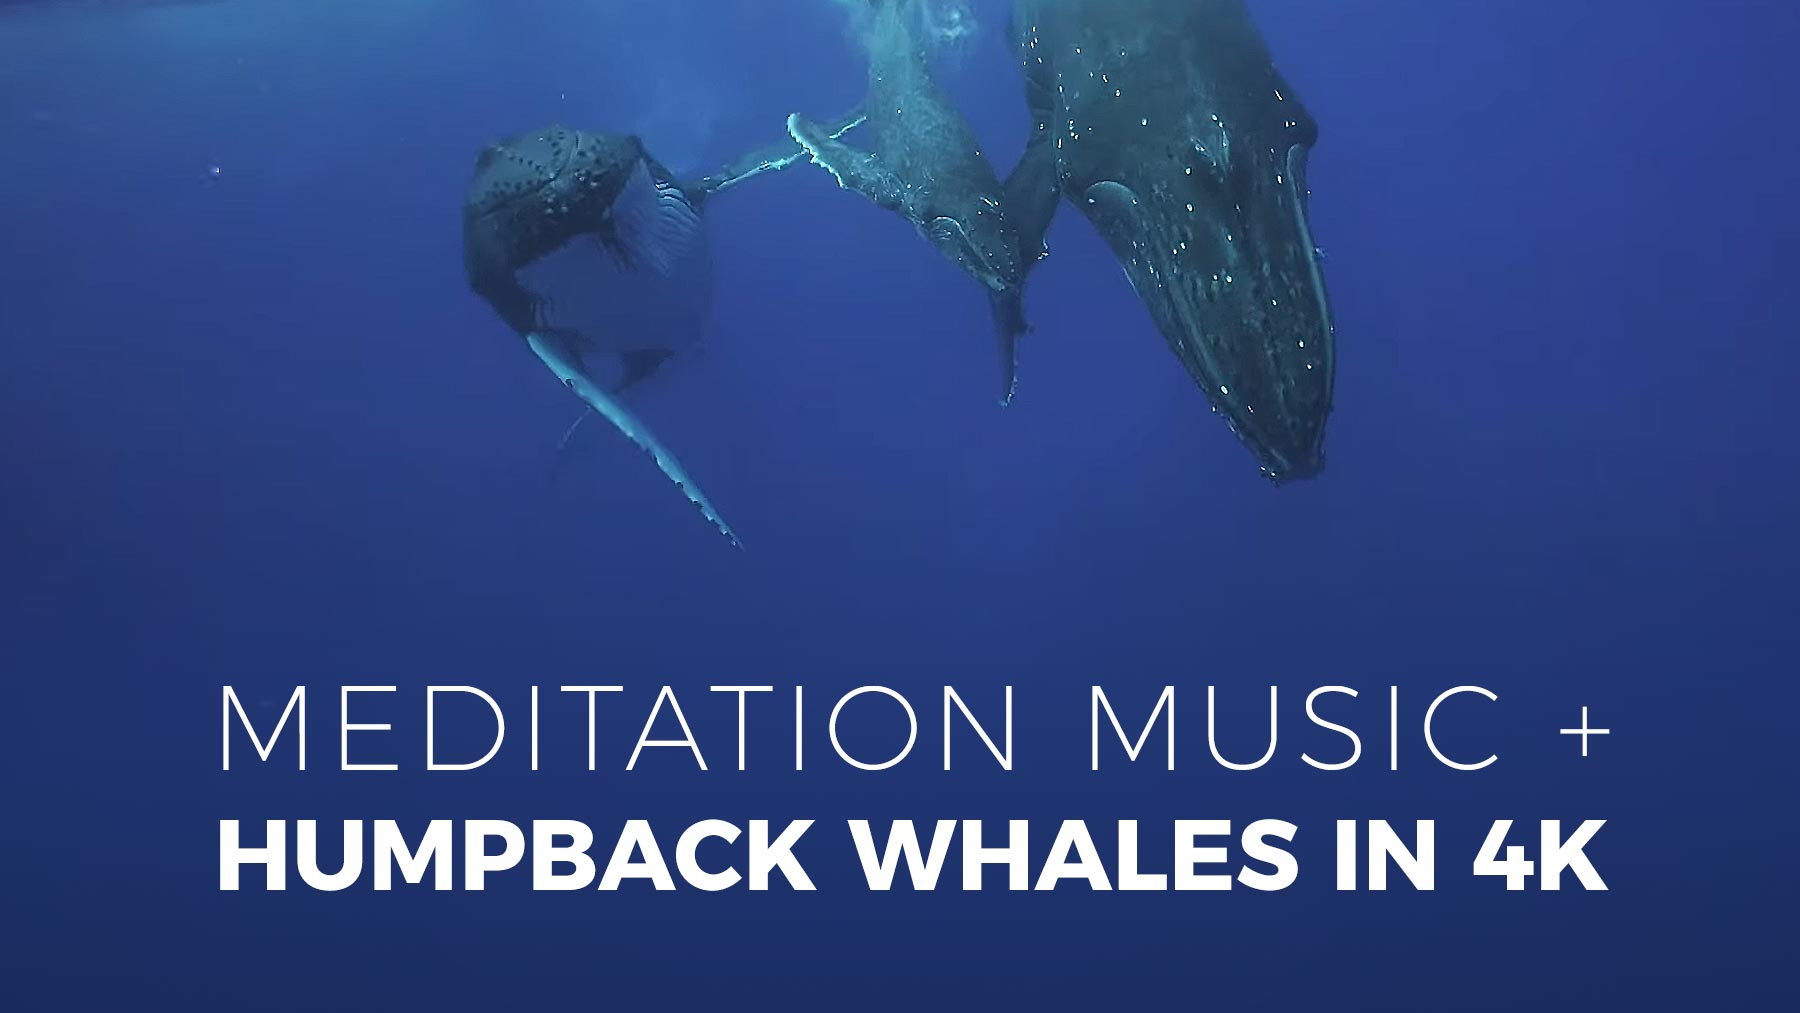 Meditation Music + Humpback Whales in 4K